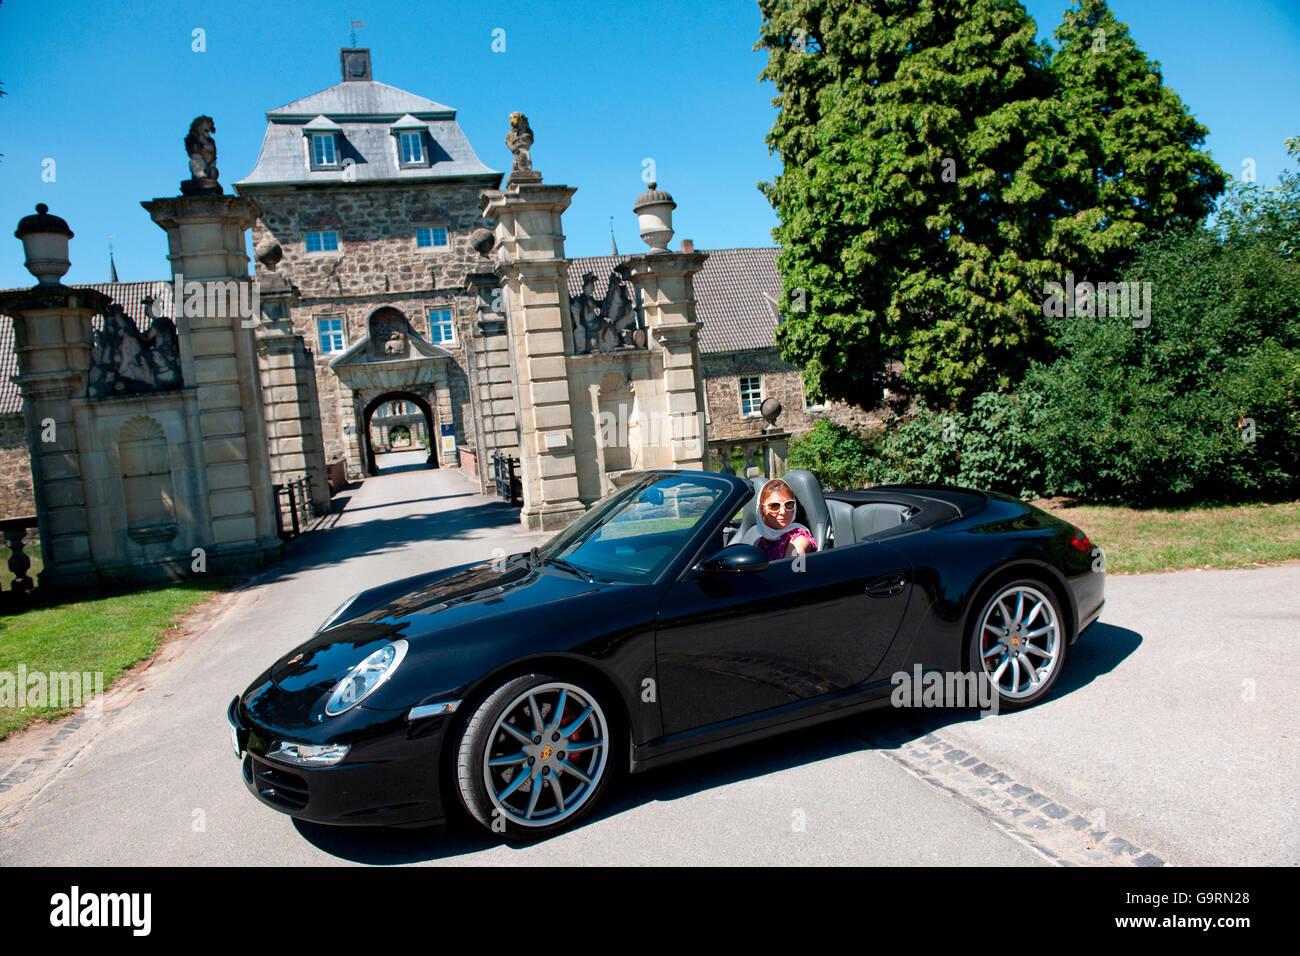 stylish woman and Porsche 911 in front of castle, 911 carrera, 4S, convertible car, sportscar, luxurious - Stock Image